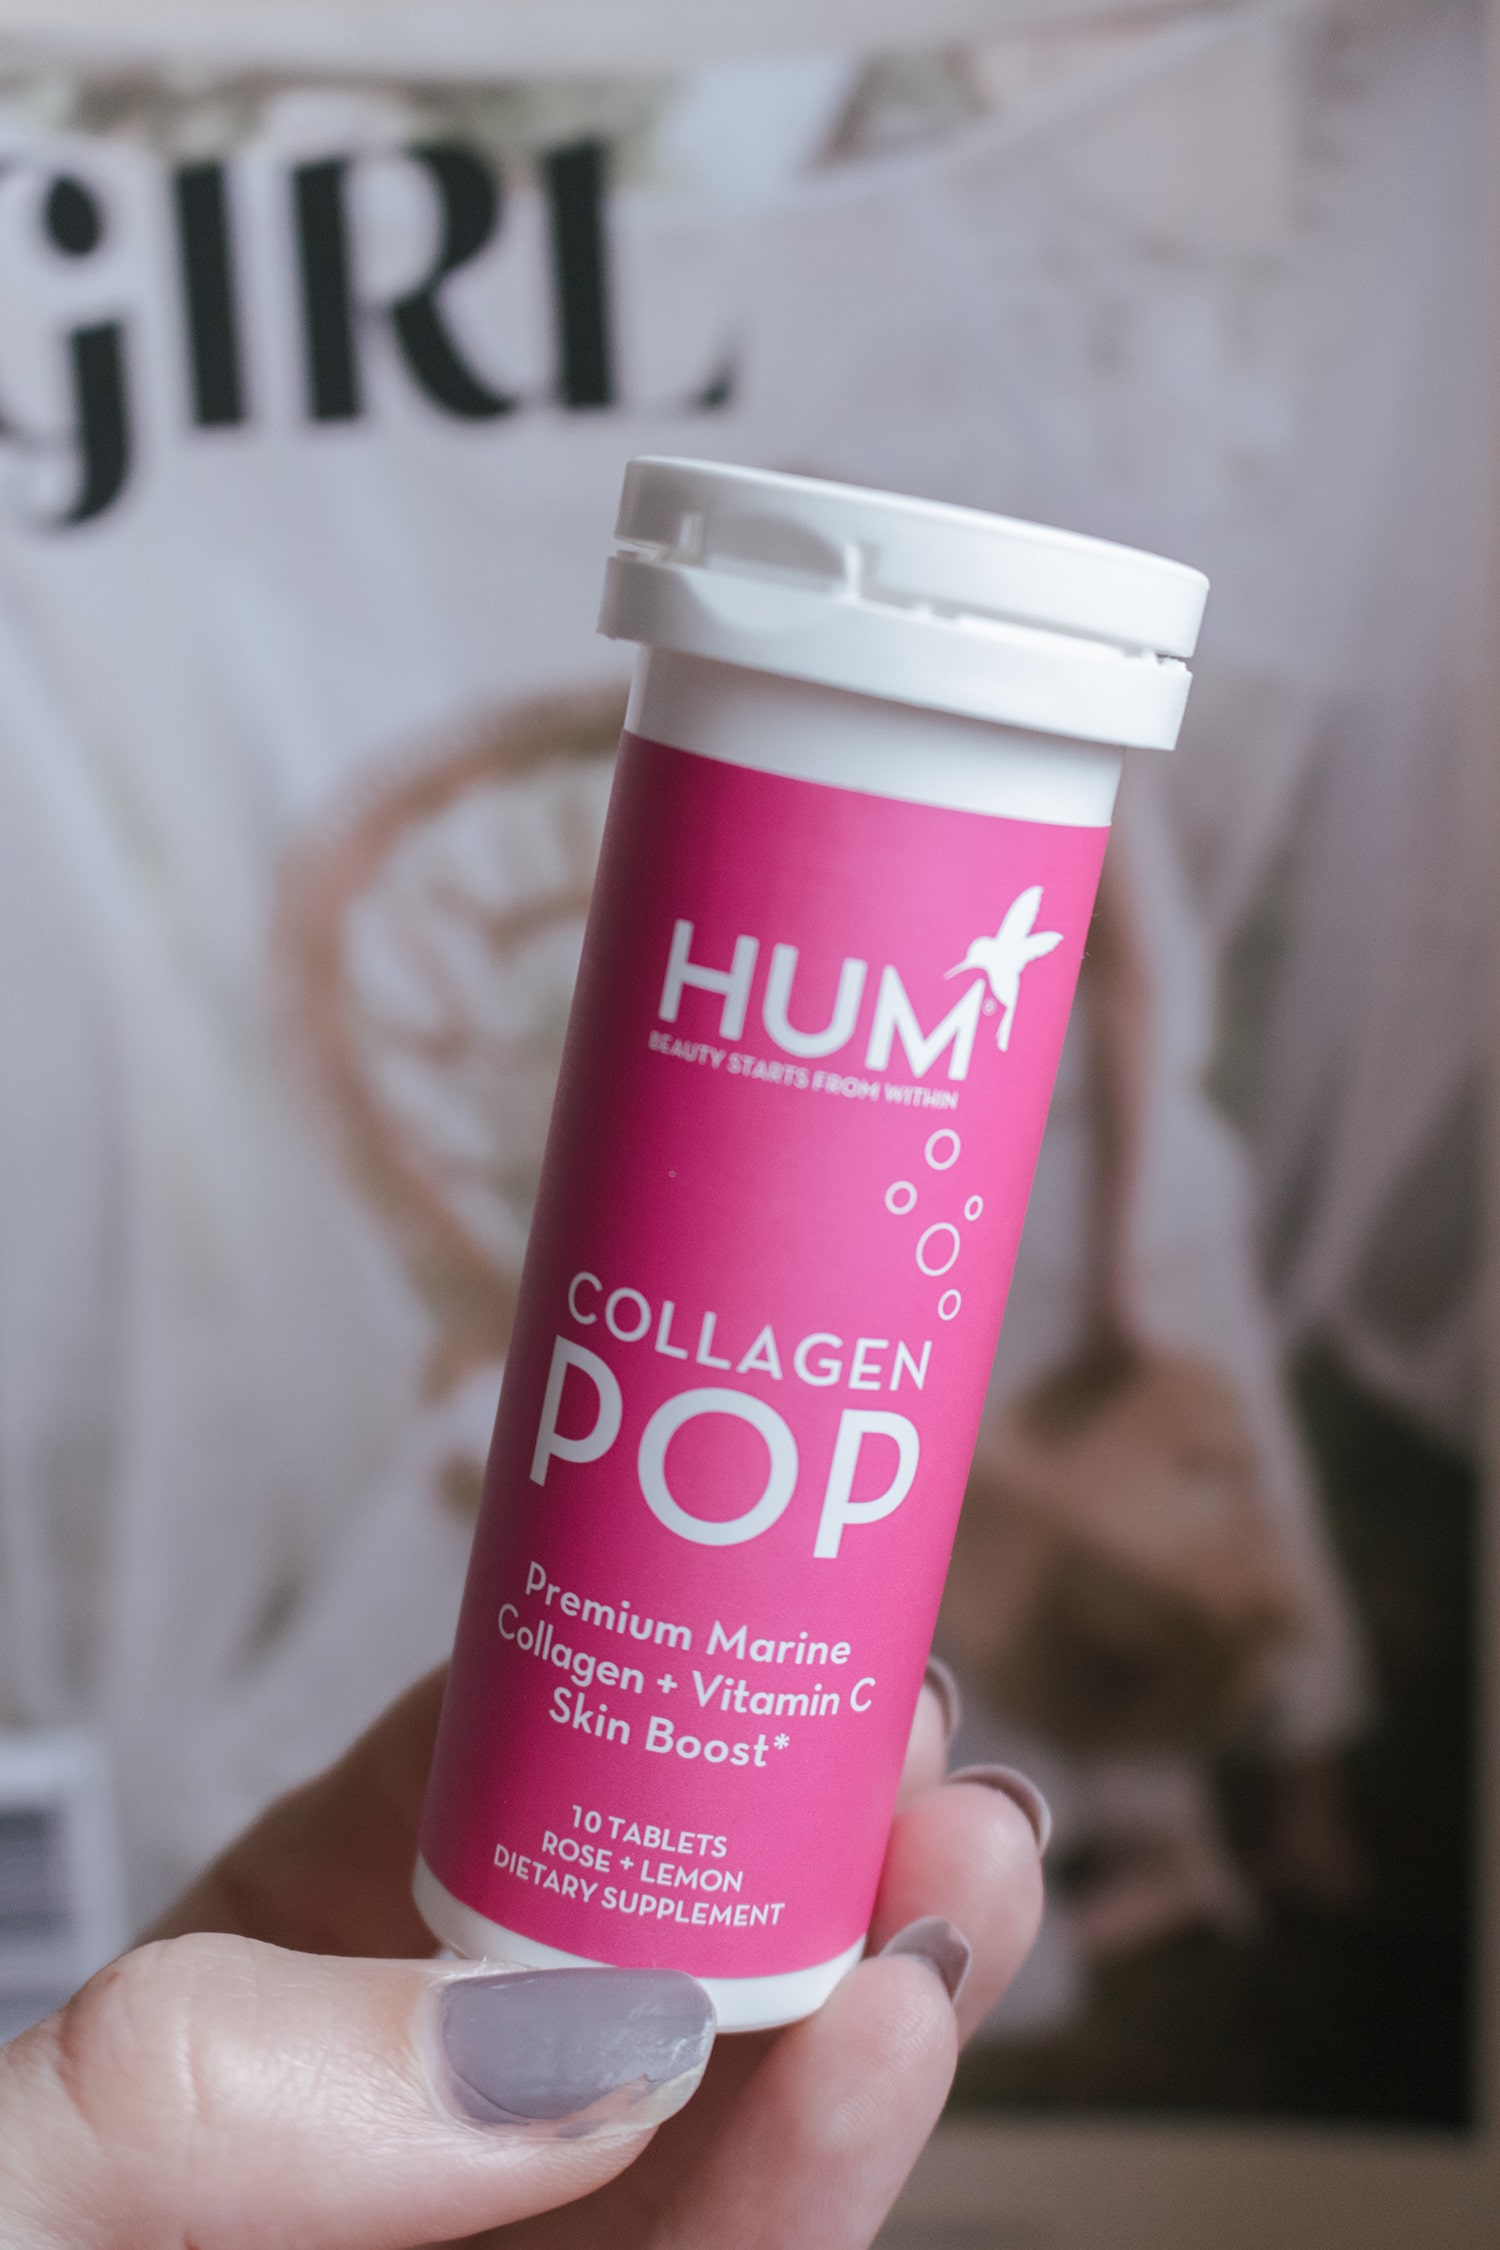 Hum Nutrition Collagen Pop Beauty